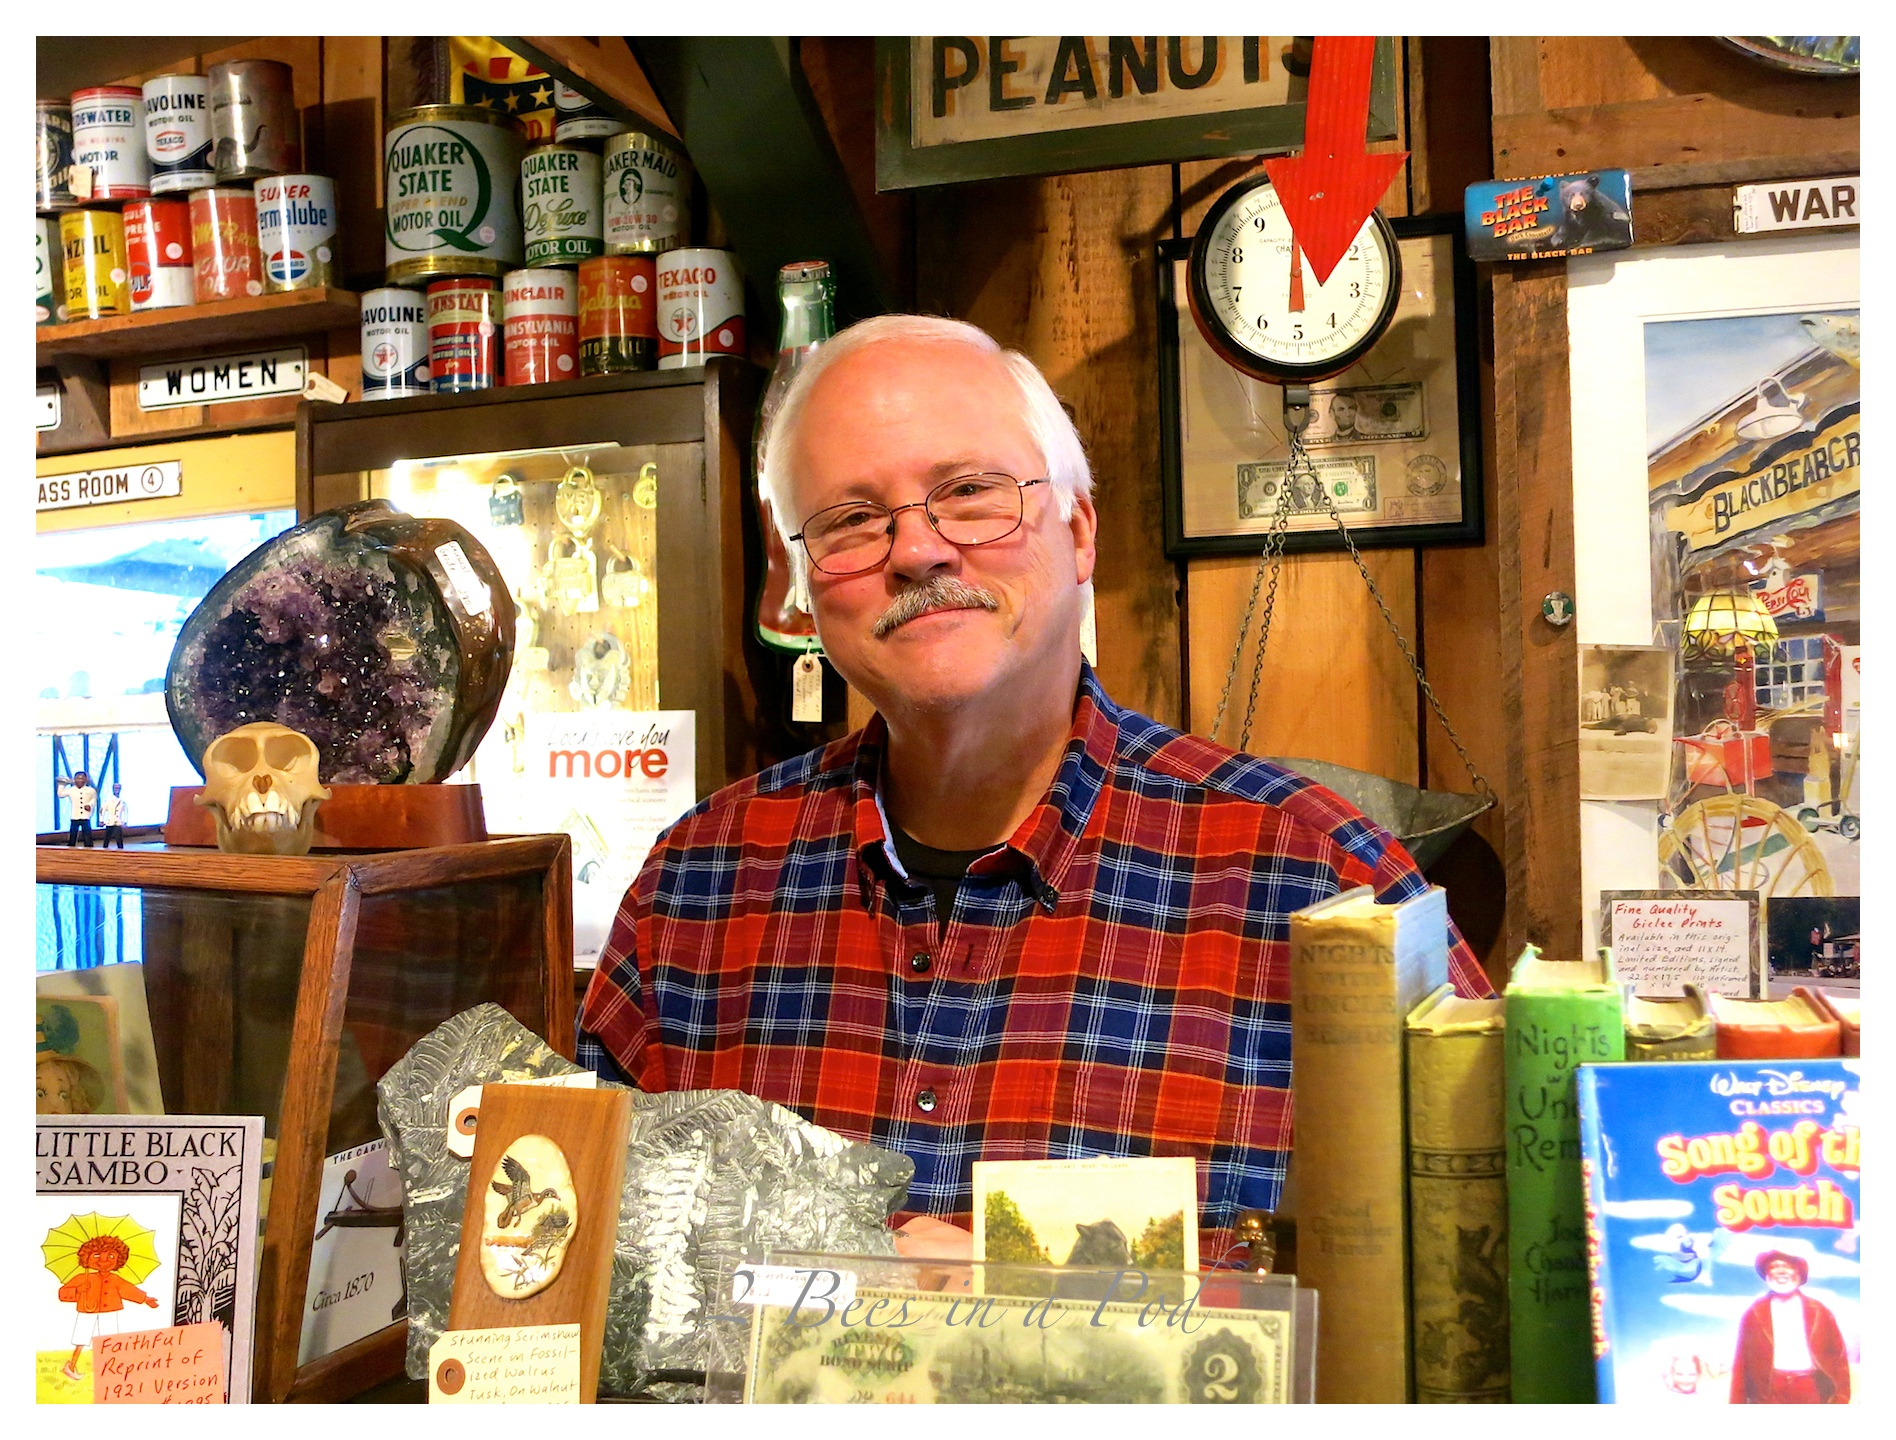 Jim reaves, owner of Black Bear Creek Antiques in Clayton, Georgia